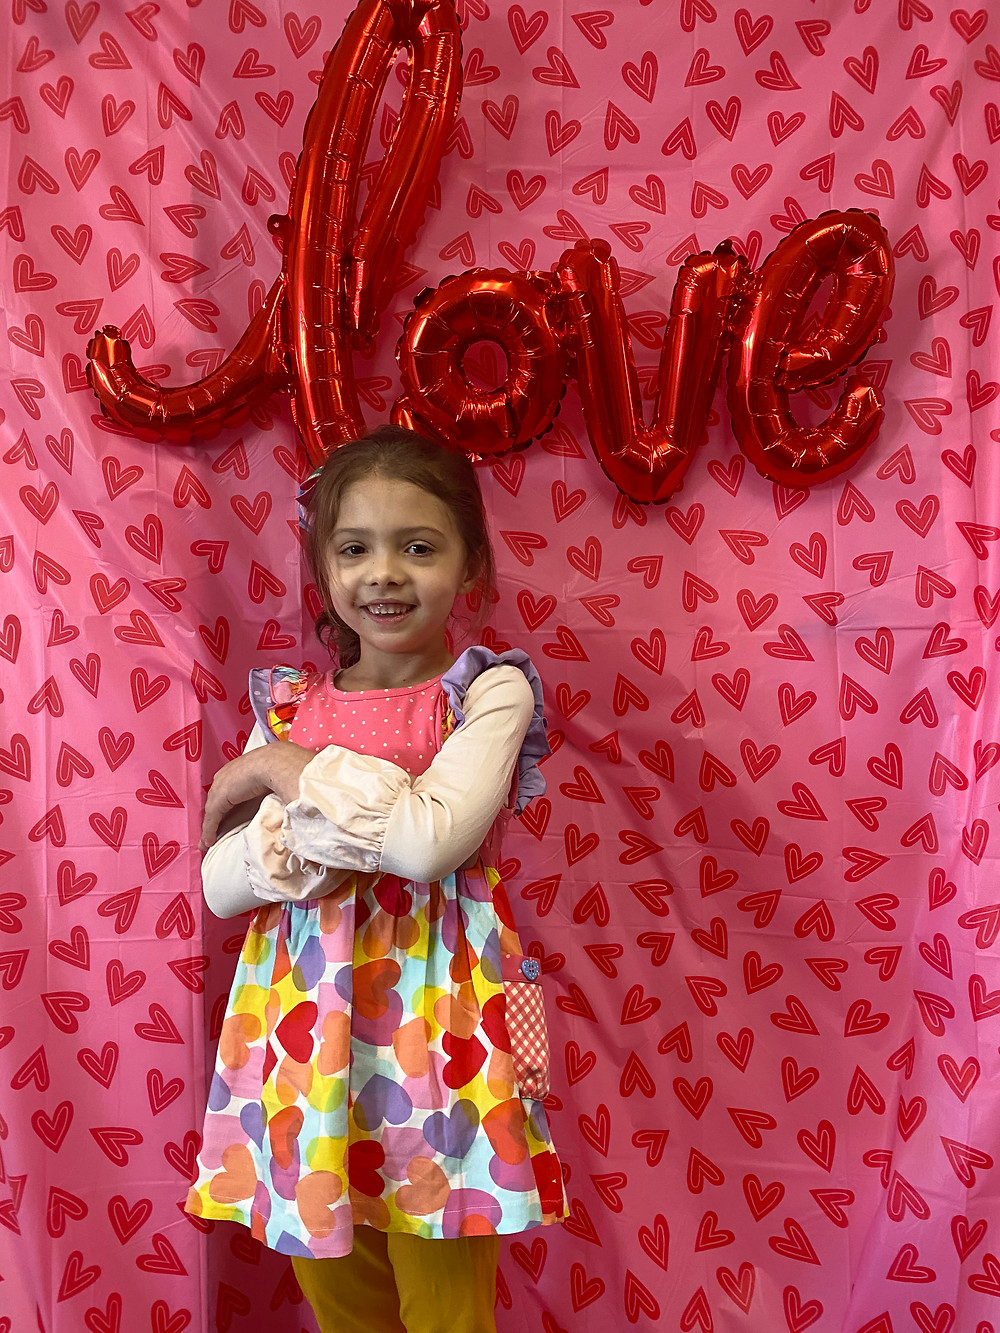 preschool student poses for Valentine's picture